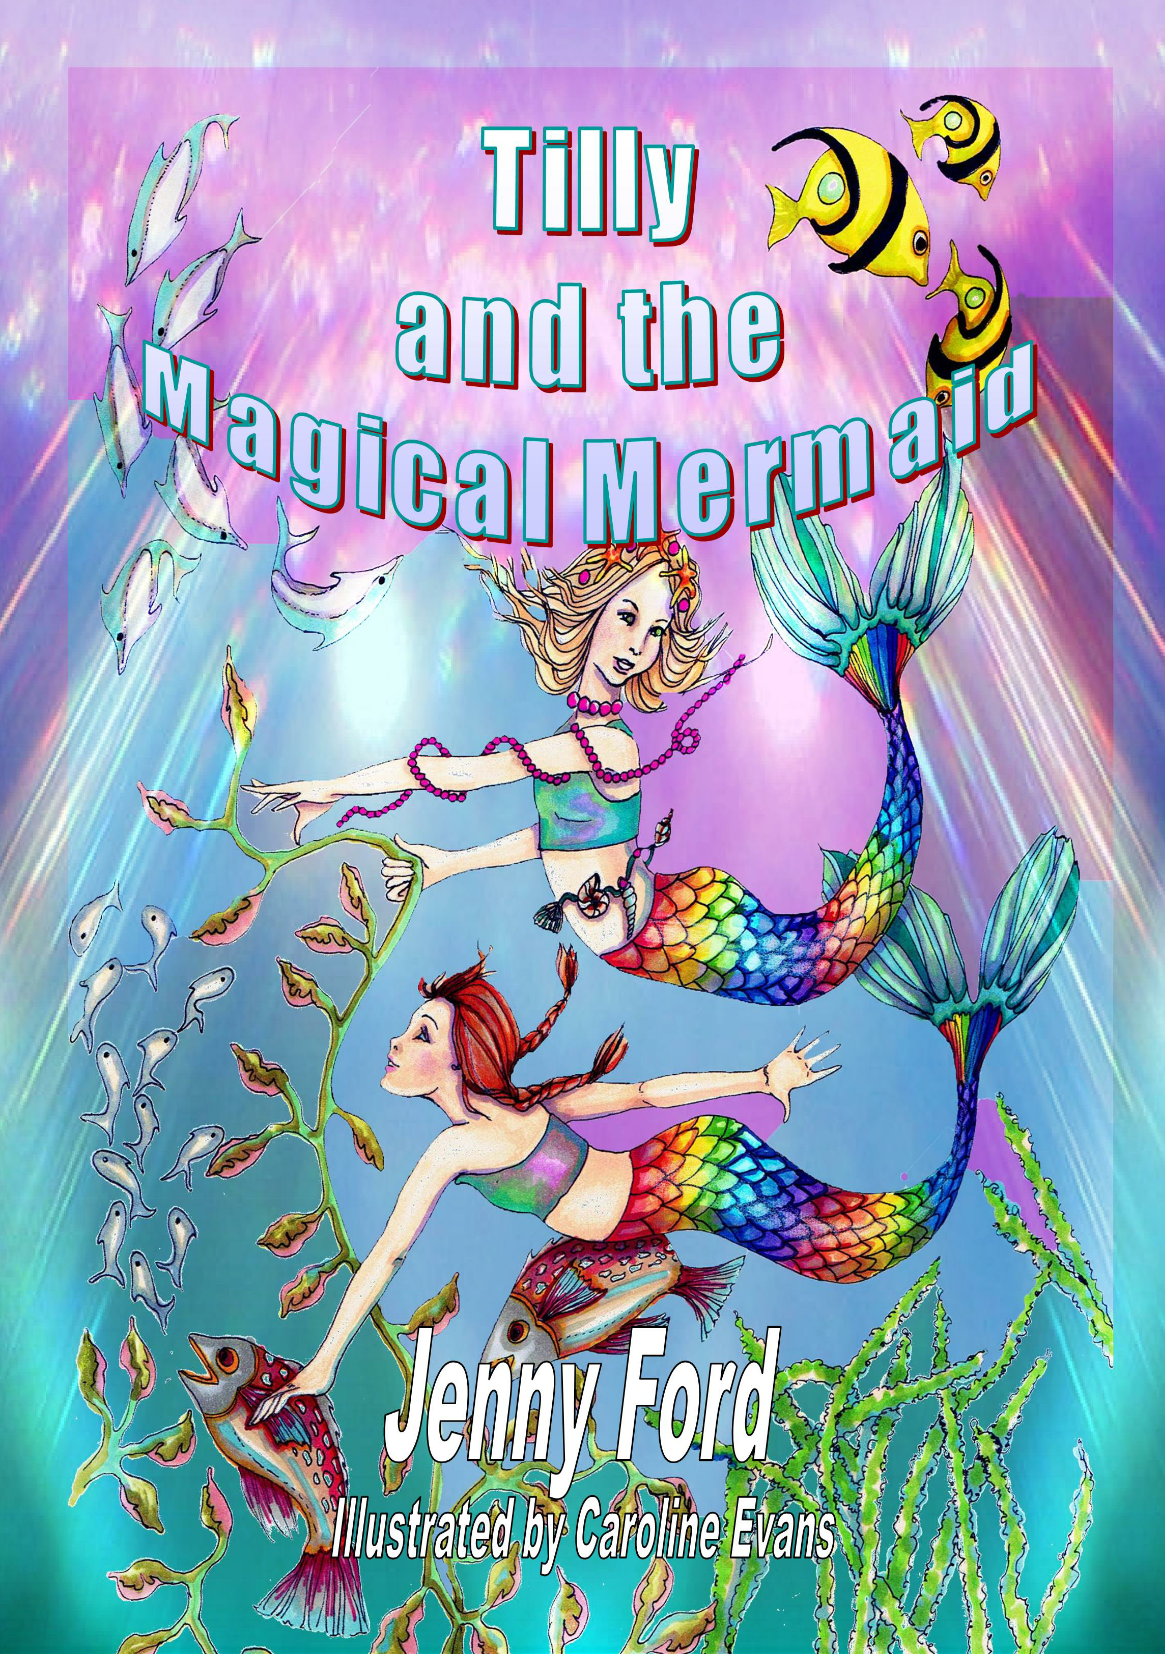 Tilly and the Magical Mermaid (paperback)